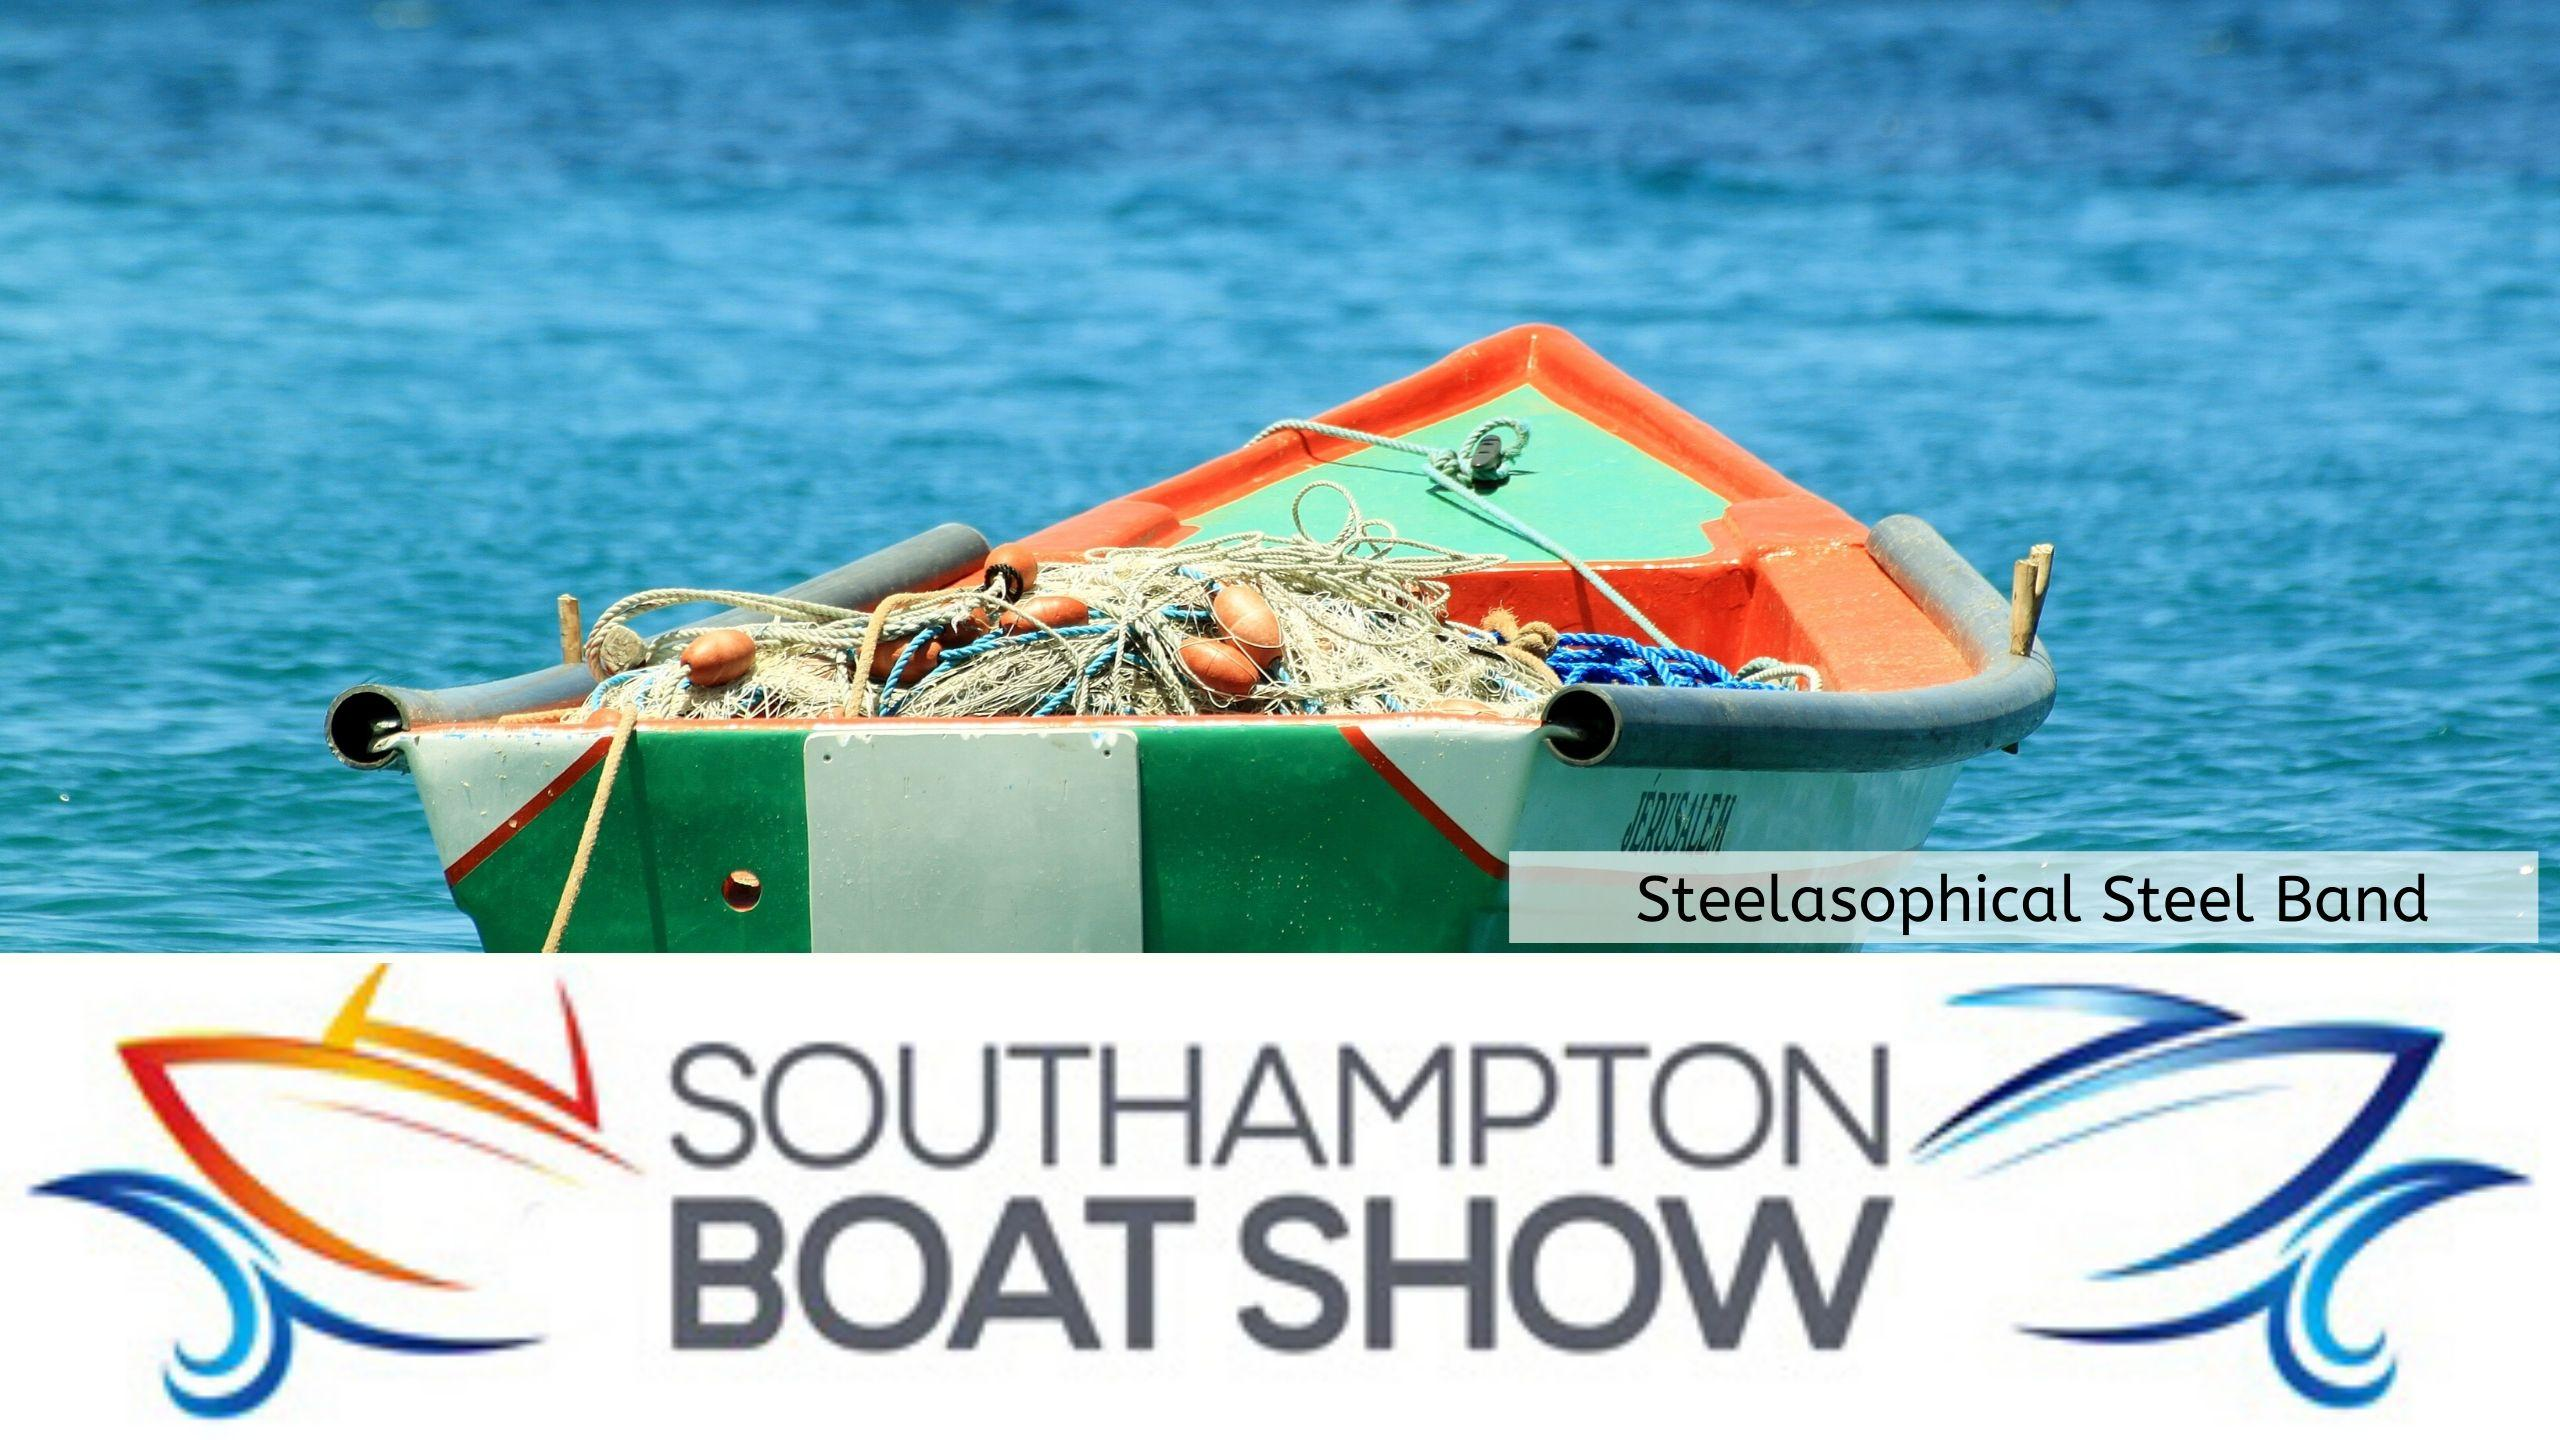 Steelasophical Steel Band Southampton Boat Show Yacht Market d34